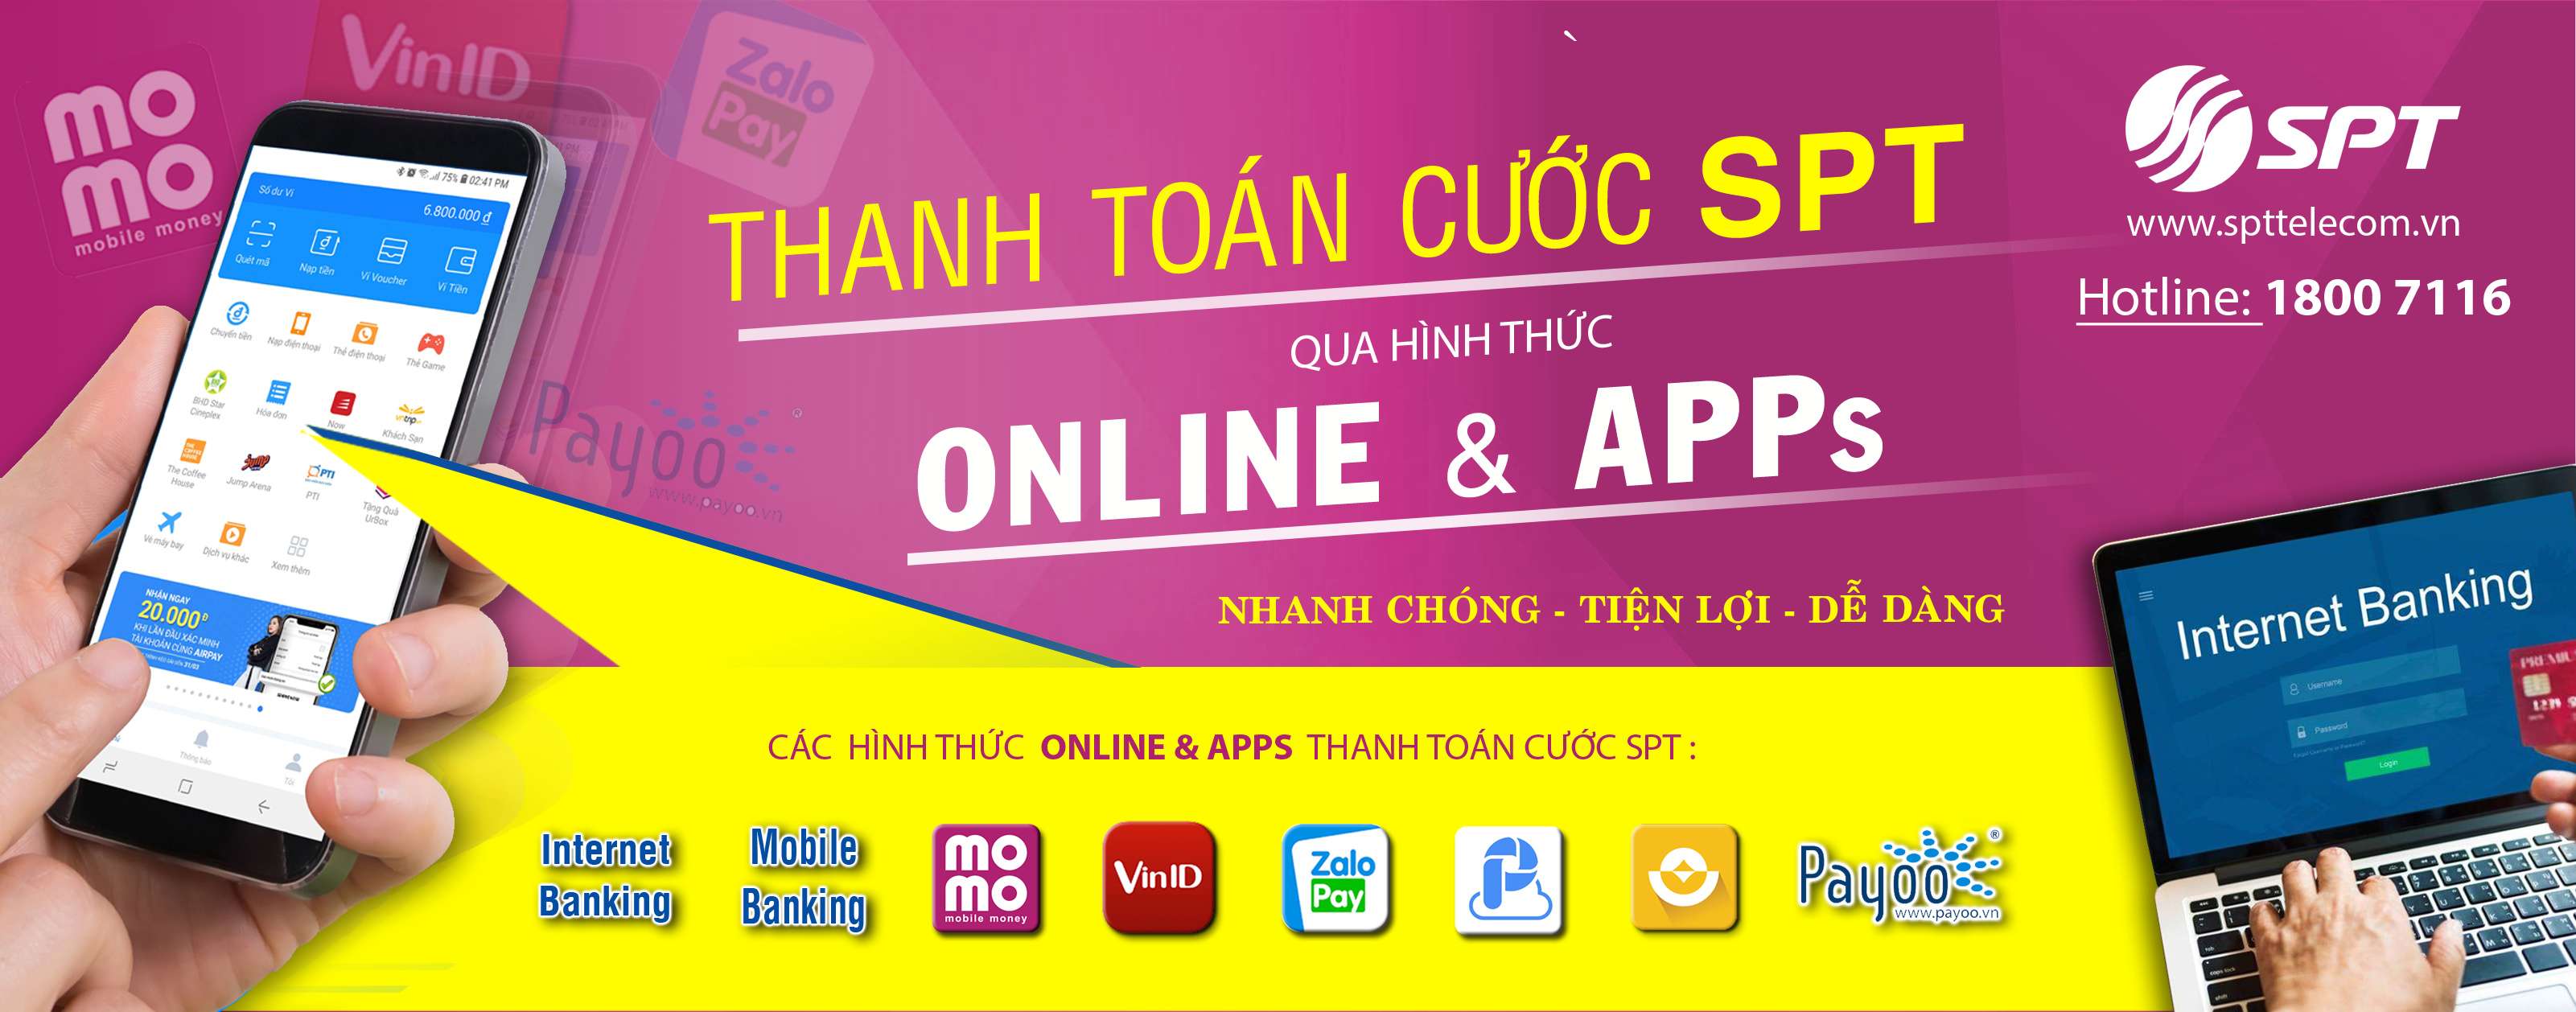 spttelecom thanh toan cuoc online silde